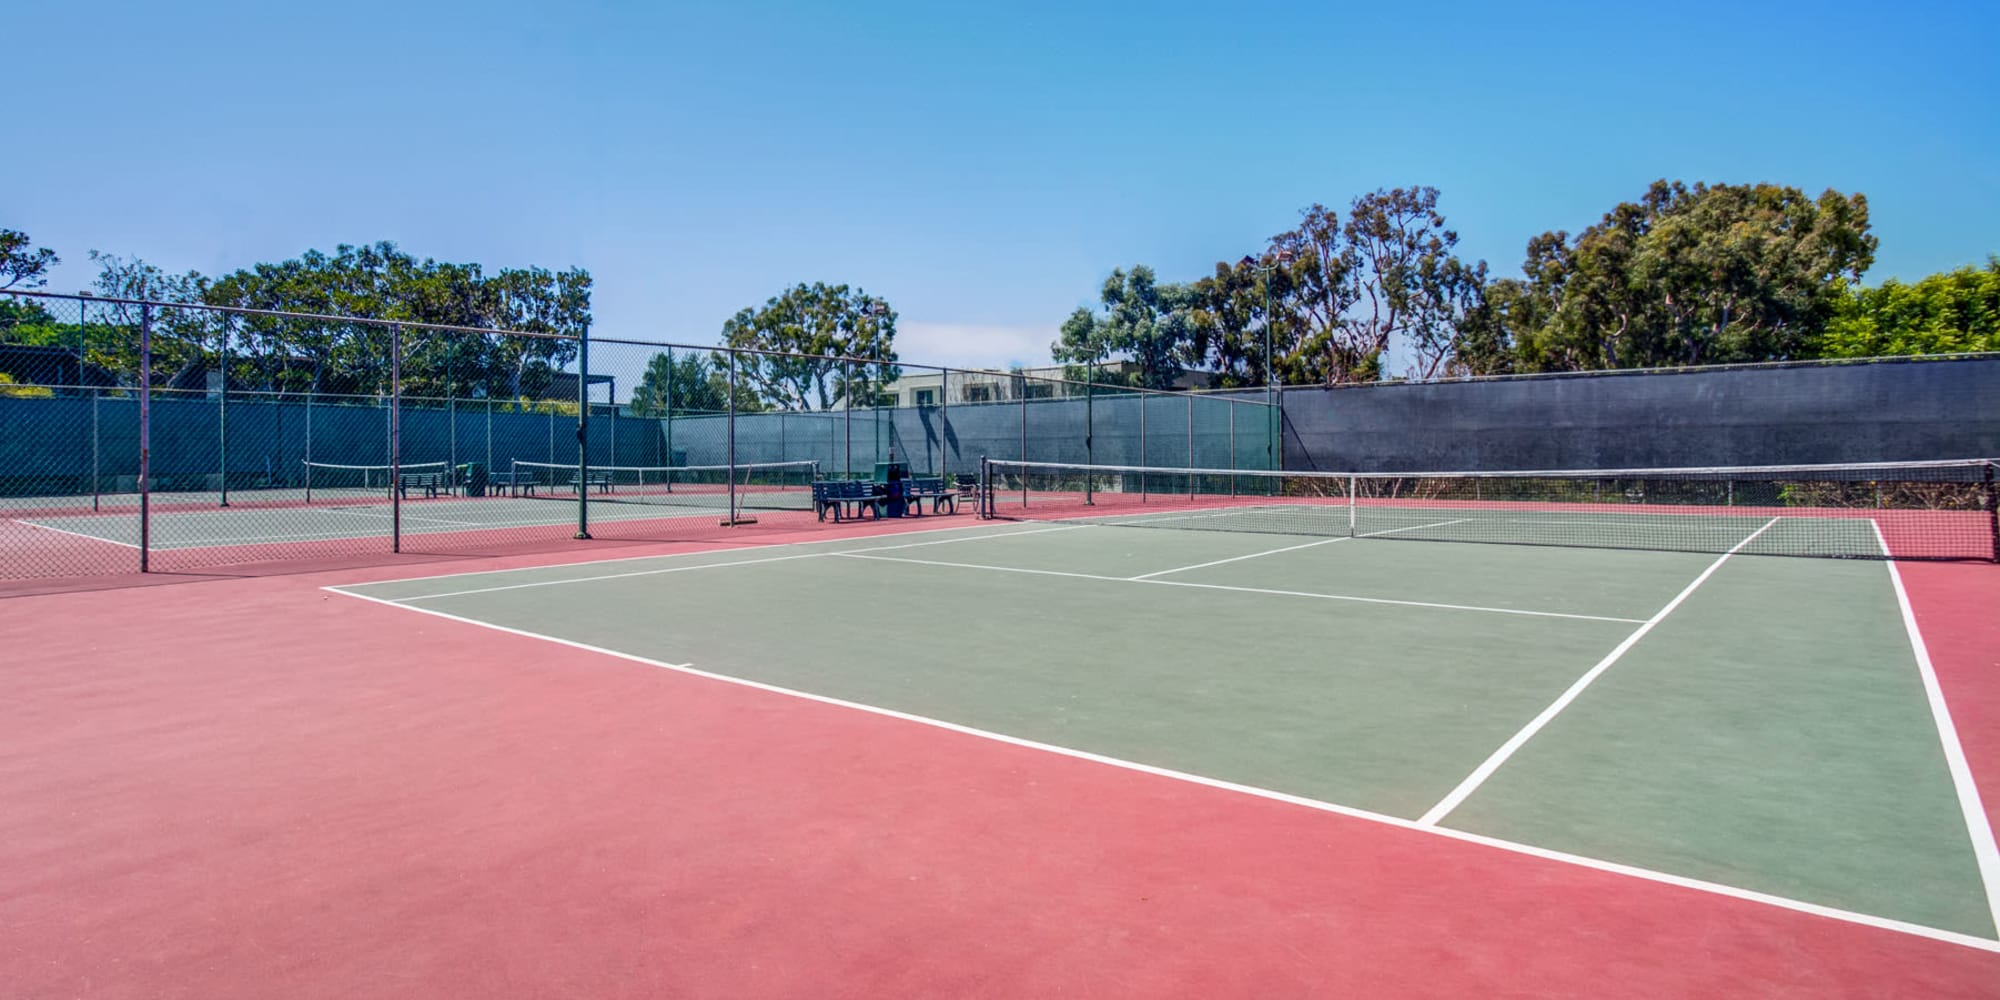 Onsite tennis courts at Mariners Village in Marina del Rey, California